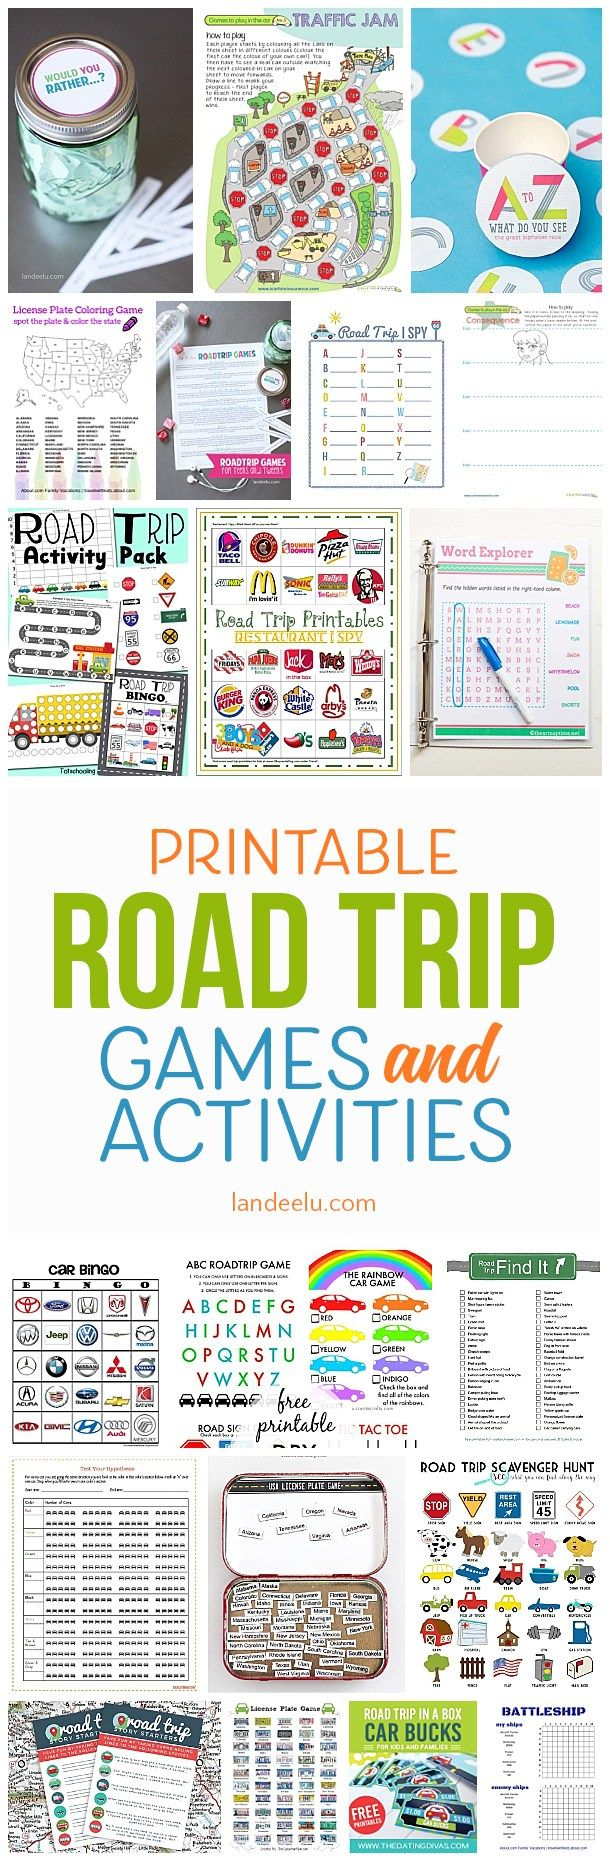 A TON of awesome printable car games for kids! So easy to print and entertain your family with these fun road trip games everyone will love!